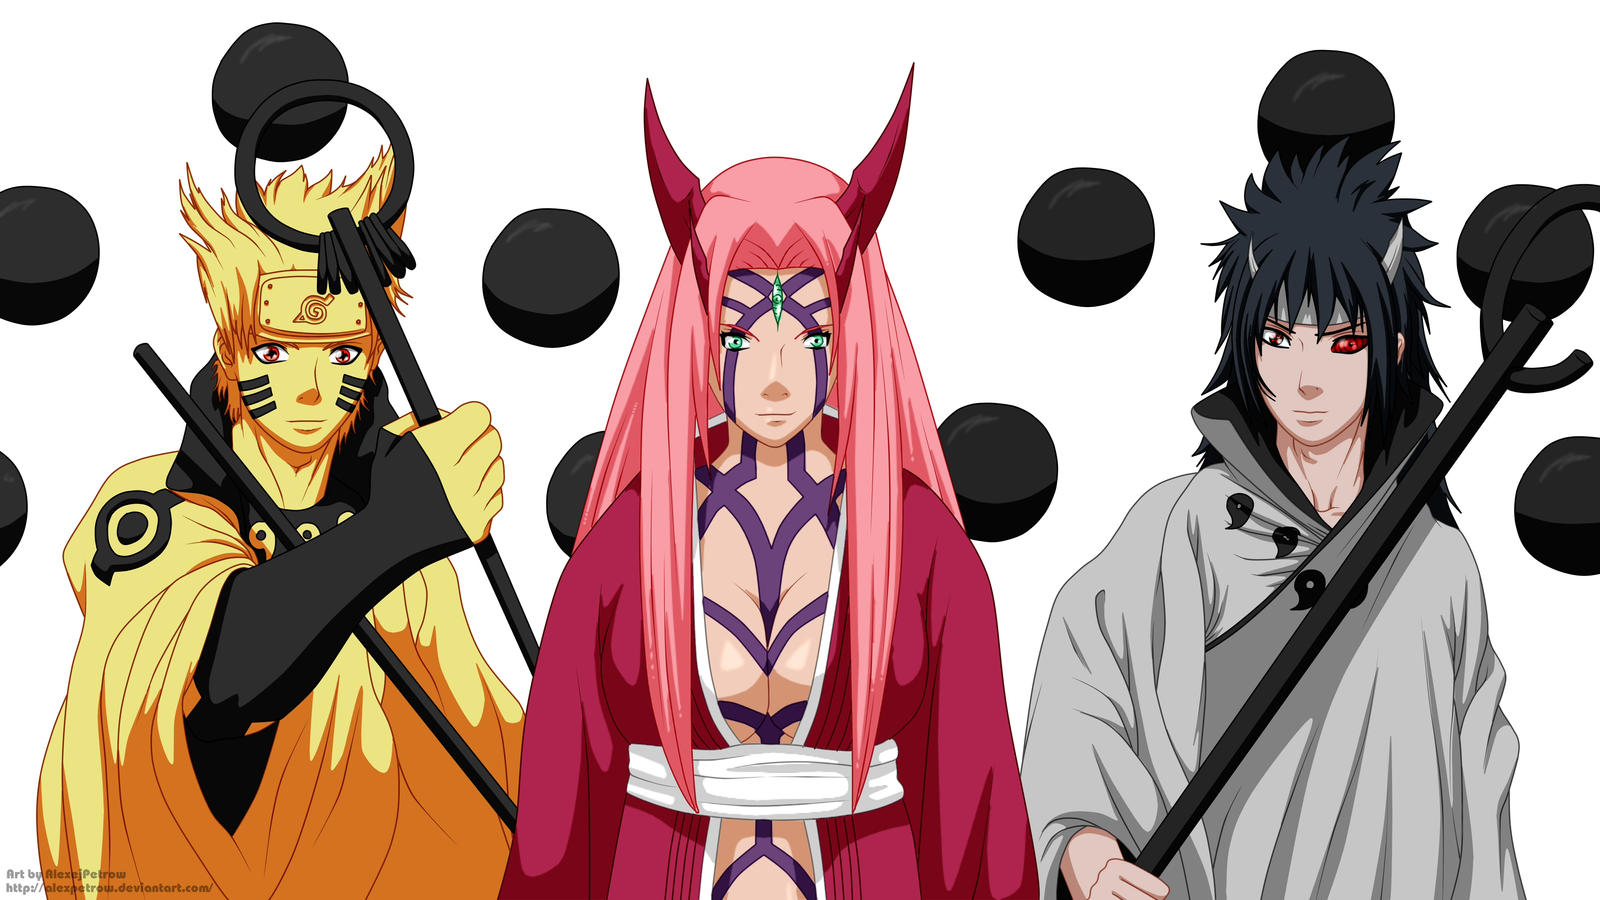 team 7 naruto sakura sasuke final form by alexpetrow on. Black Bedroom Furniture Sets. Home Design Ideas